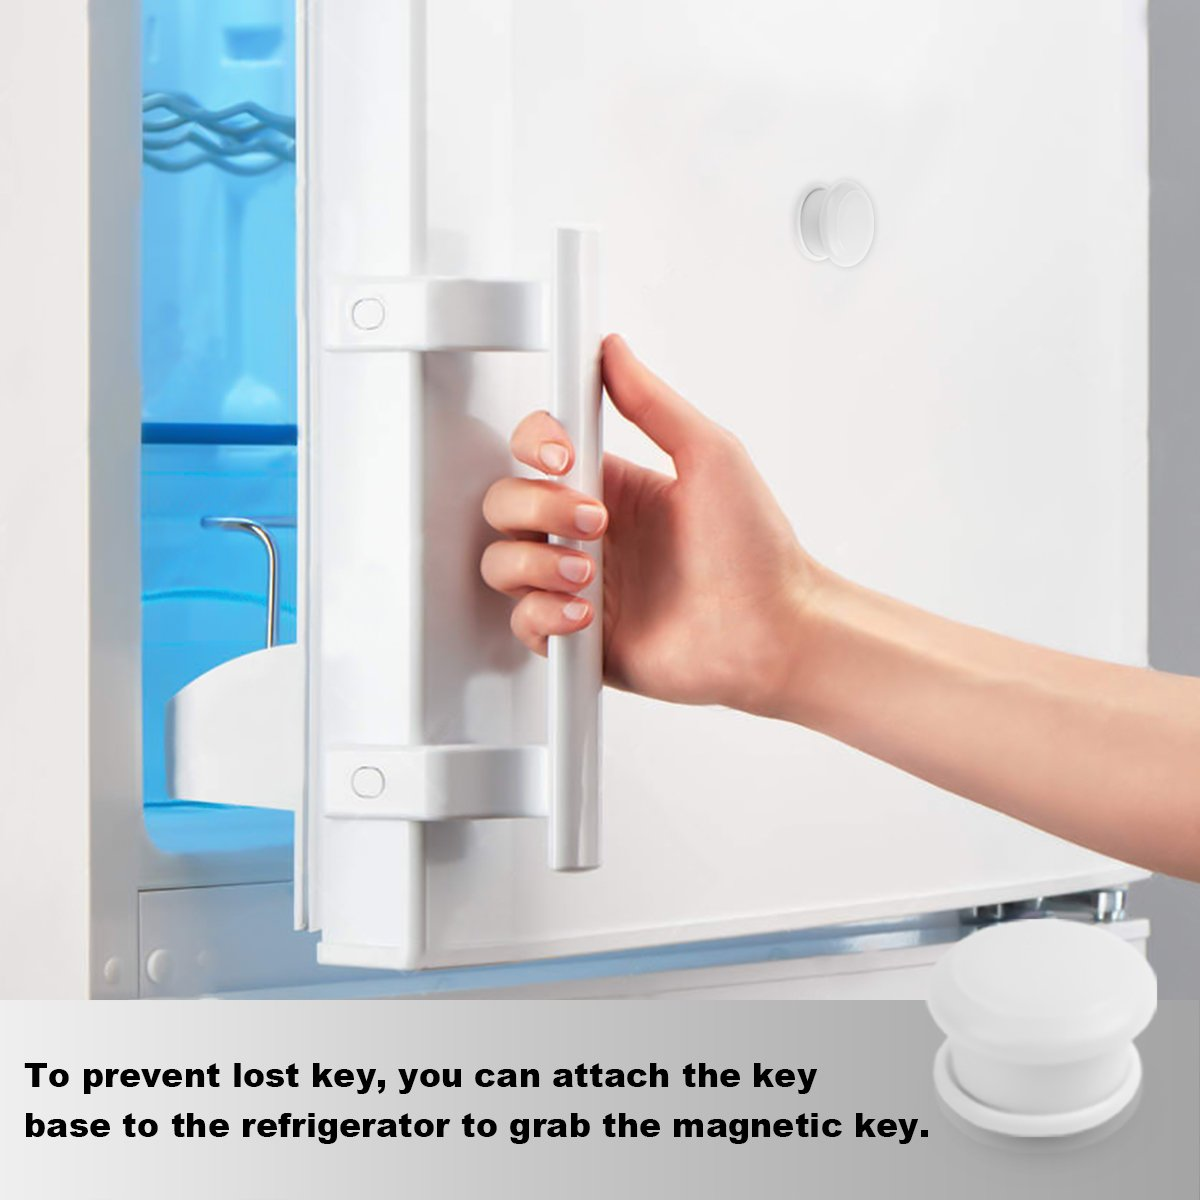 Child Safety Magnetic Cabinet Locks(16 Locks + 3 Keys), Baby Proof, No Tools Or Screws Needed - TimberRain by TimberRain (Image #7)